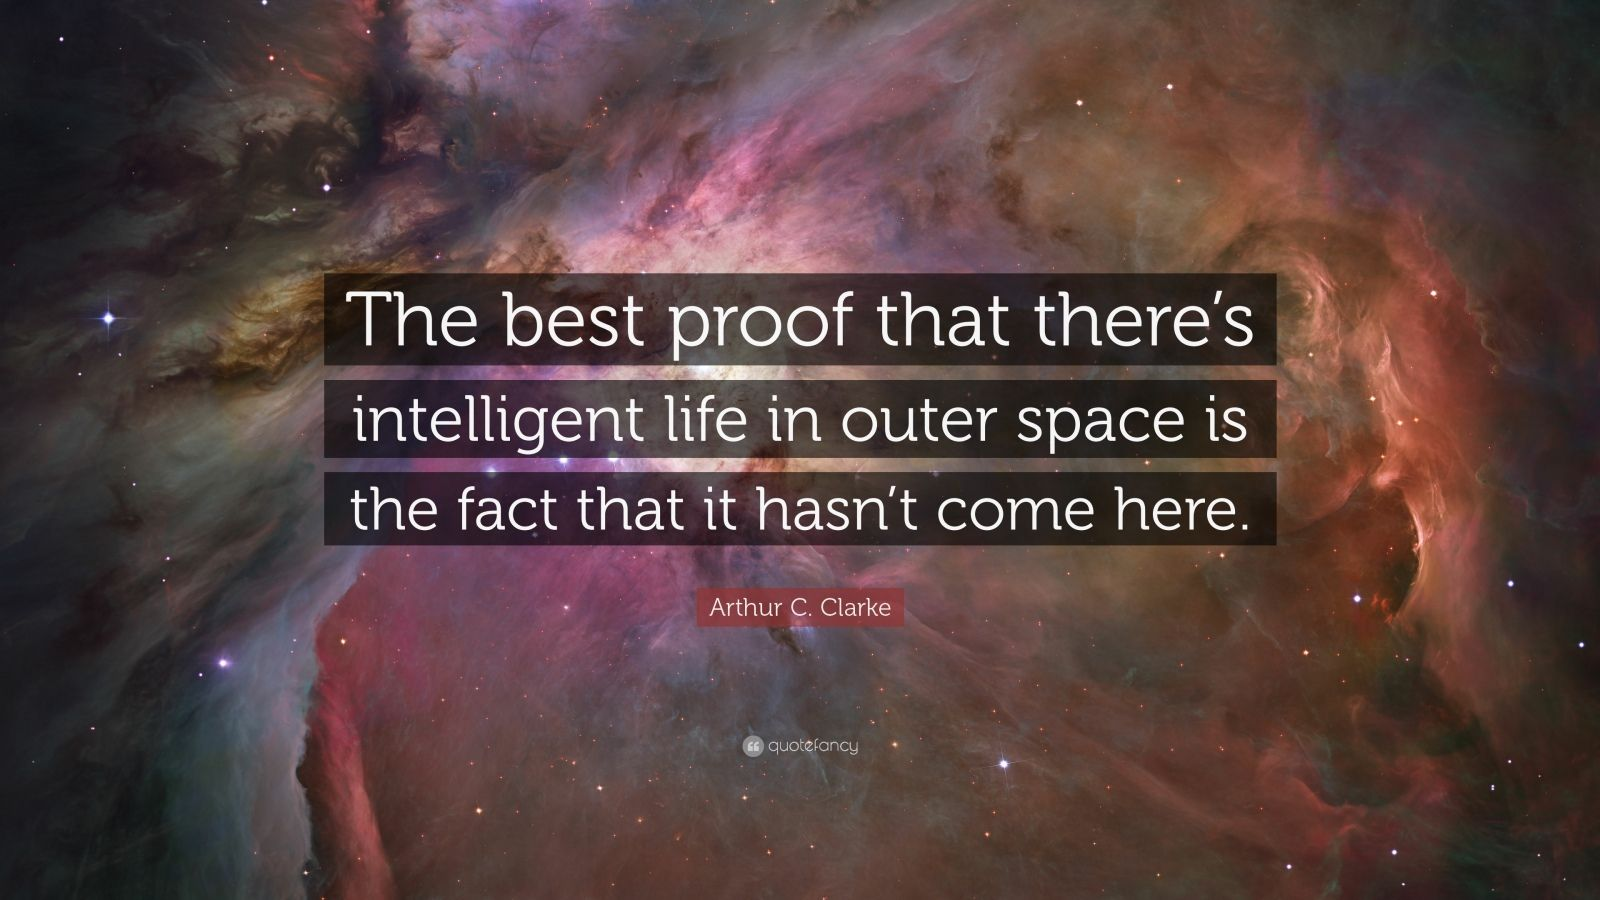 """Arthur C. Clarke Quote: """"The best proof that there's intelligent life in outer space is the fact that it hasn't come here."""""""